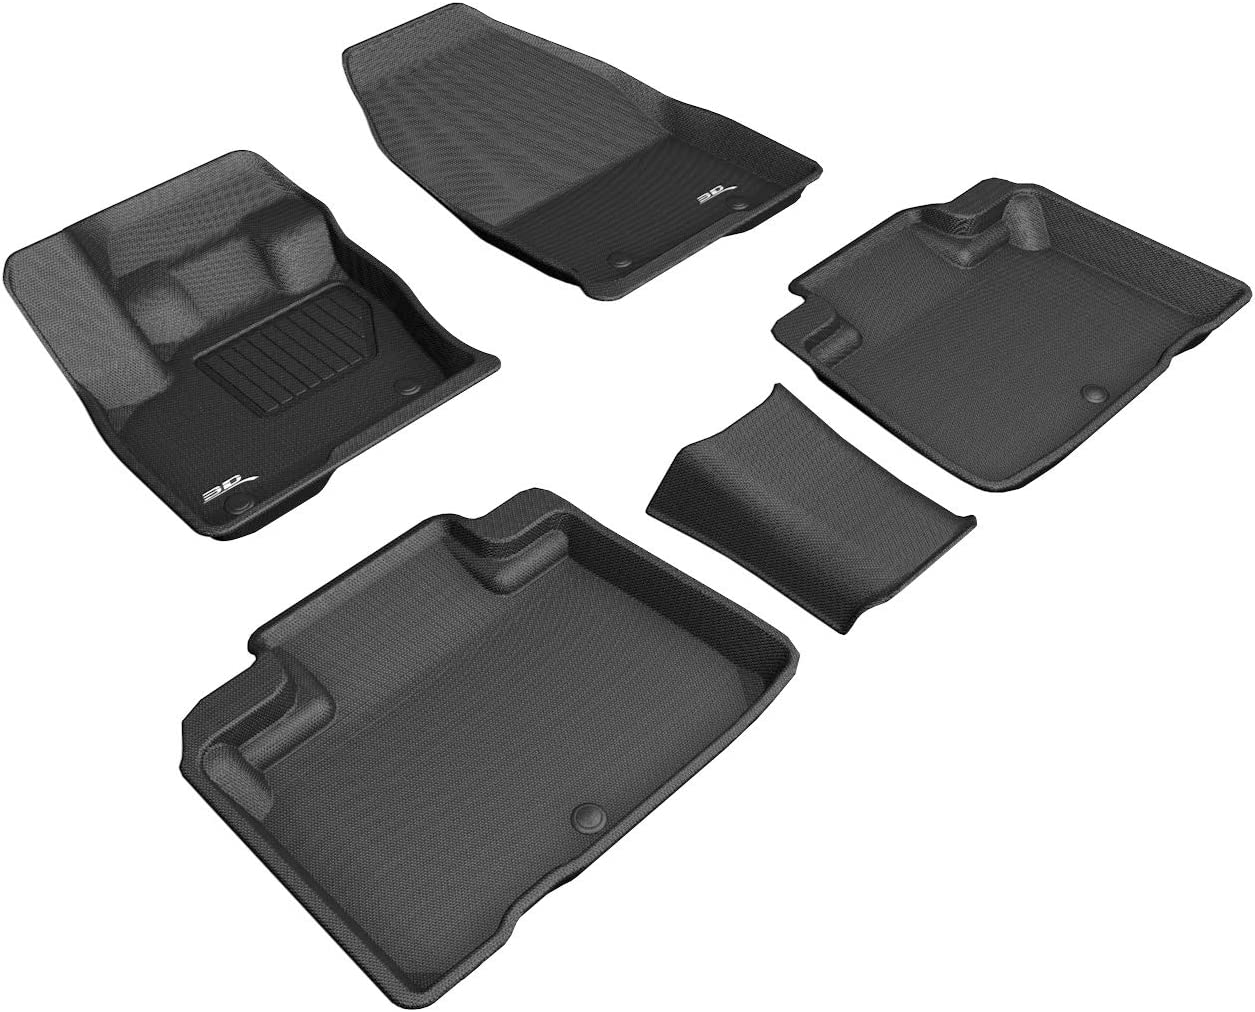 Coverking Custom Fit Front and Rear Floor Mats for Select Lincoln Continental Models Nylon Carpet CFMBX1LN9205 Black